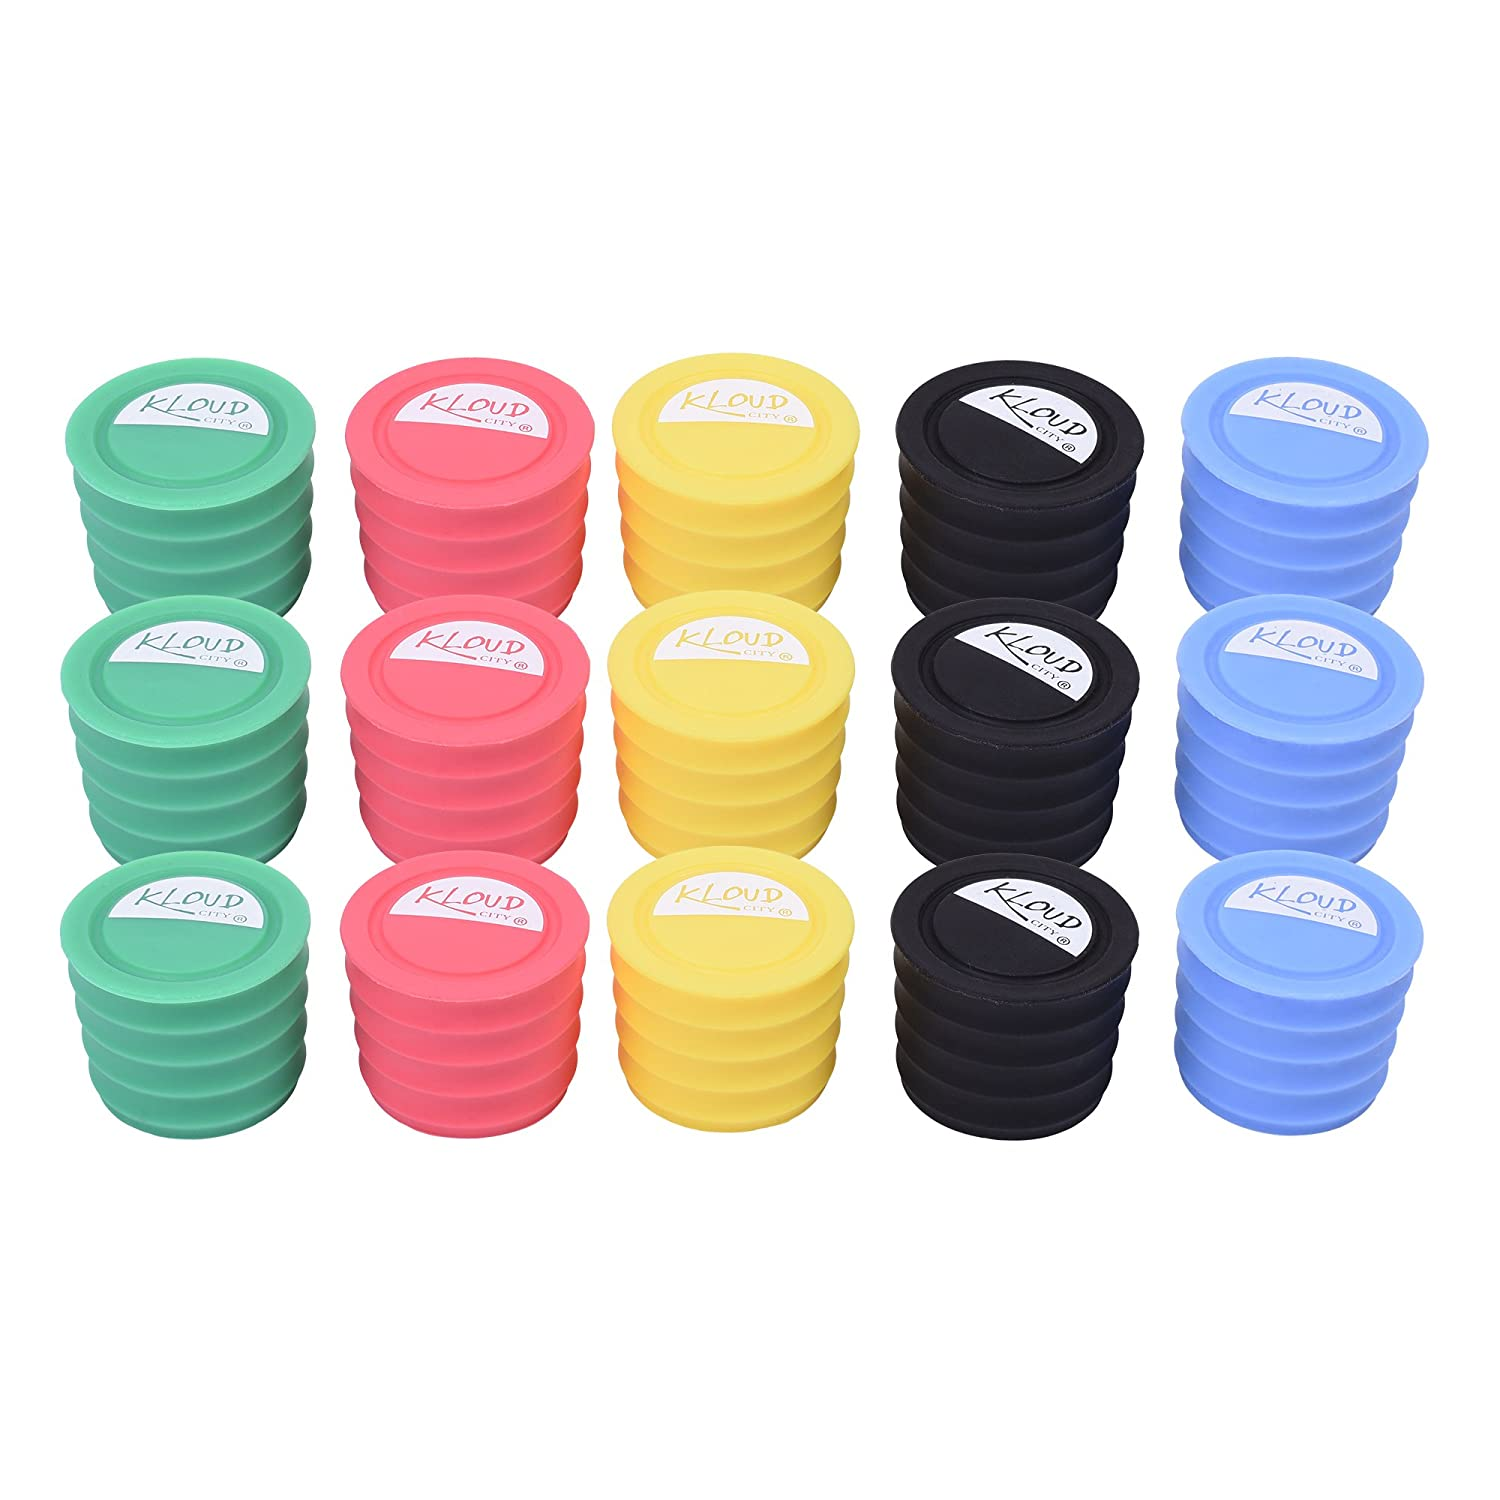 KLOUD City Pack of 15 in 5 Assorted Colors Food Grade Wine Champagne Beer Glass Bottle Caps, Stoppers - Keeps Your Liquor Fresh KC-0735